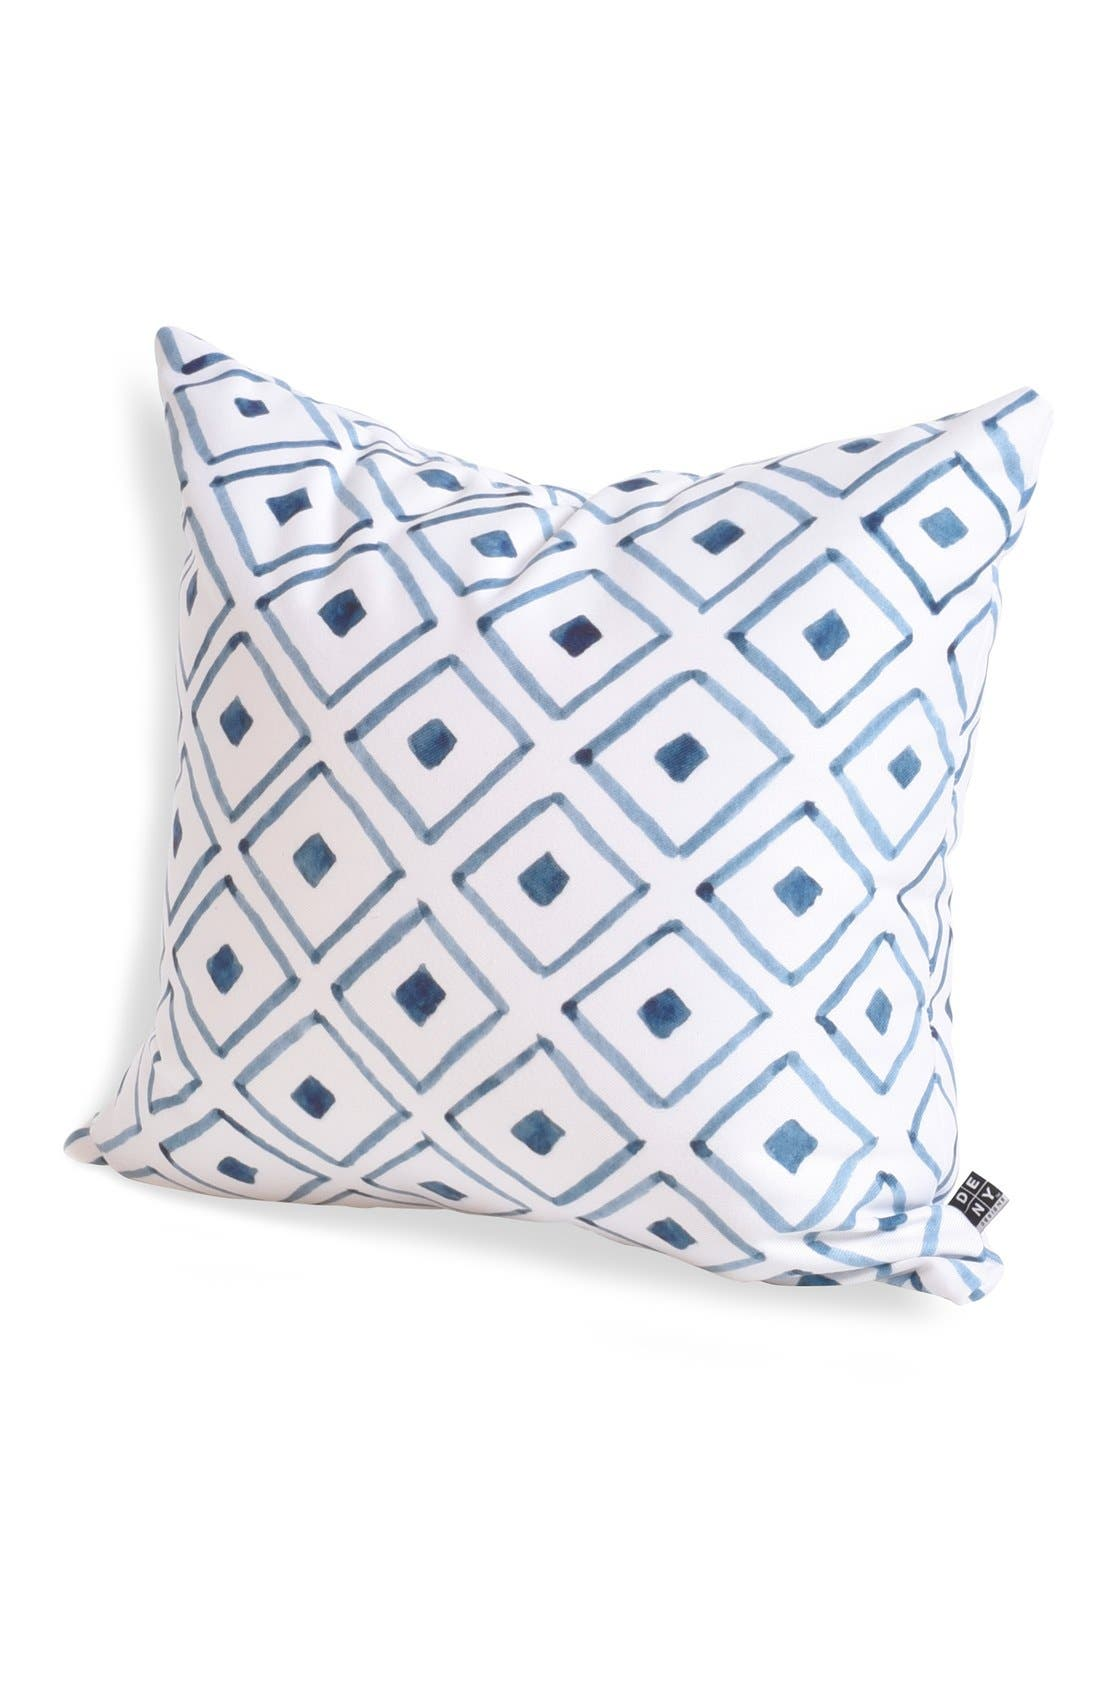 'Social Proper Ascot' Pillow,                         Main,                         color, Blue